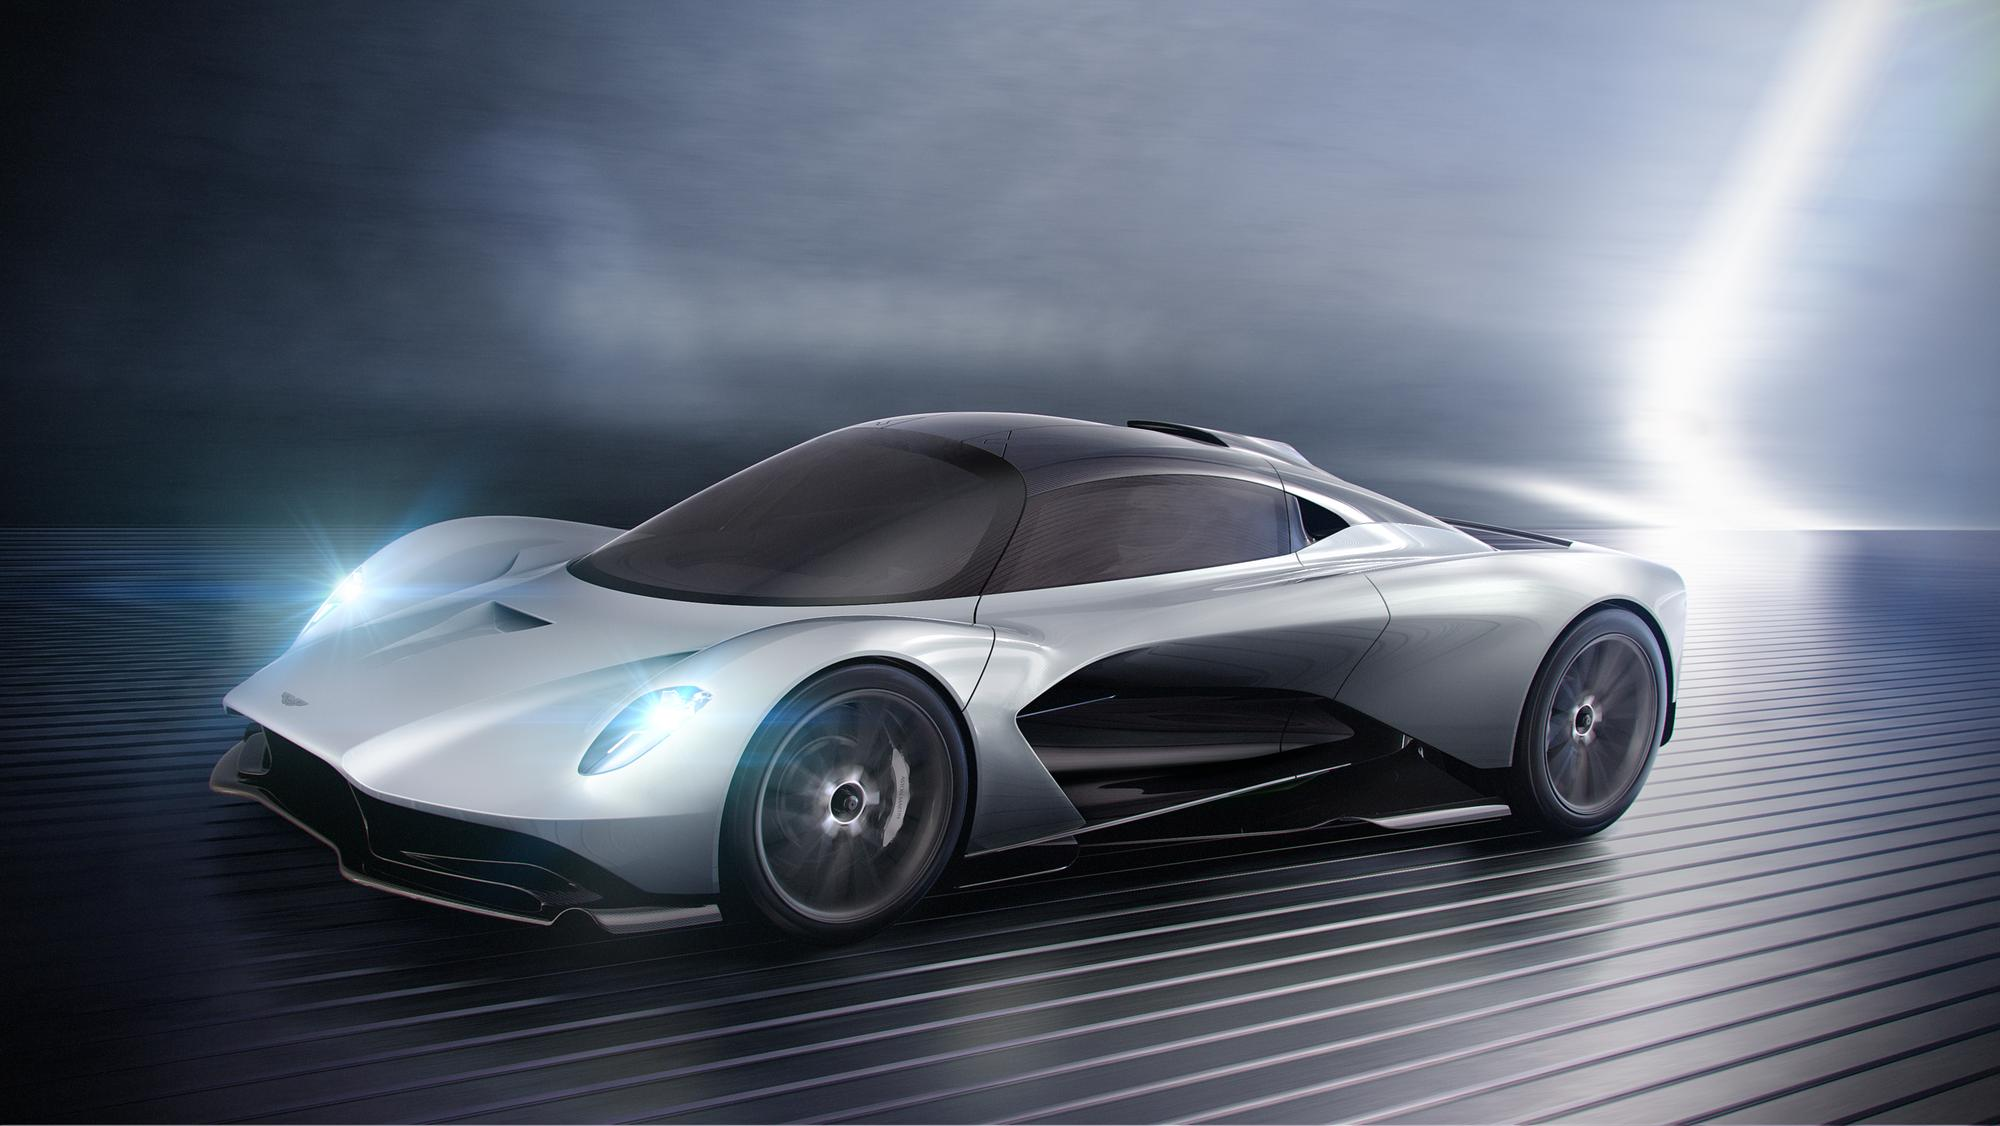 21 of the biggest new cars coming in 2021 - The models to watch out for,  from family SUVs to hybrid hypercars | The Scotsman